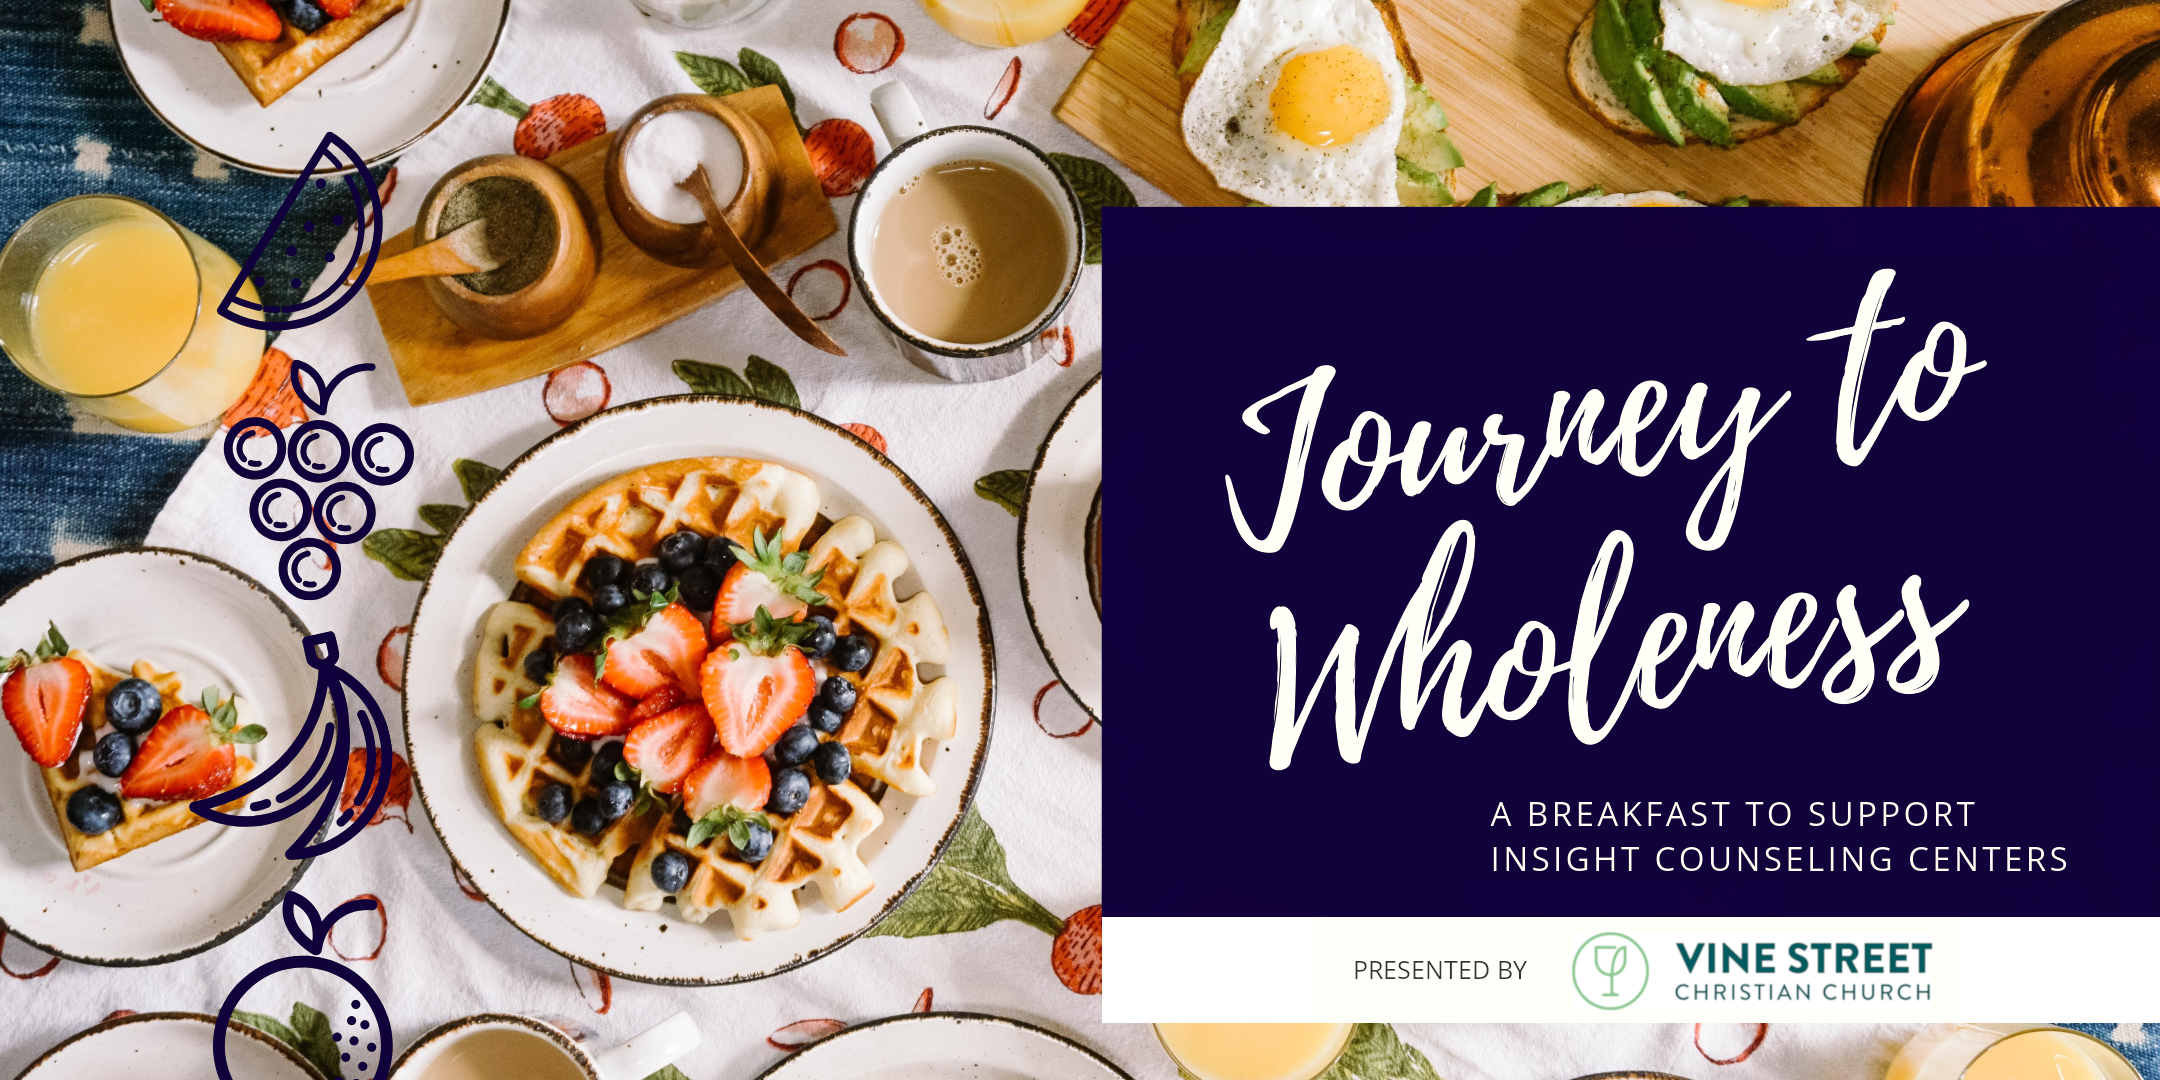 Journey to Wholeness: A Breakfast to Support Insight Counseling Centers, presented by Vine Street Christian Church